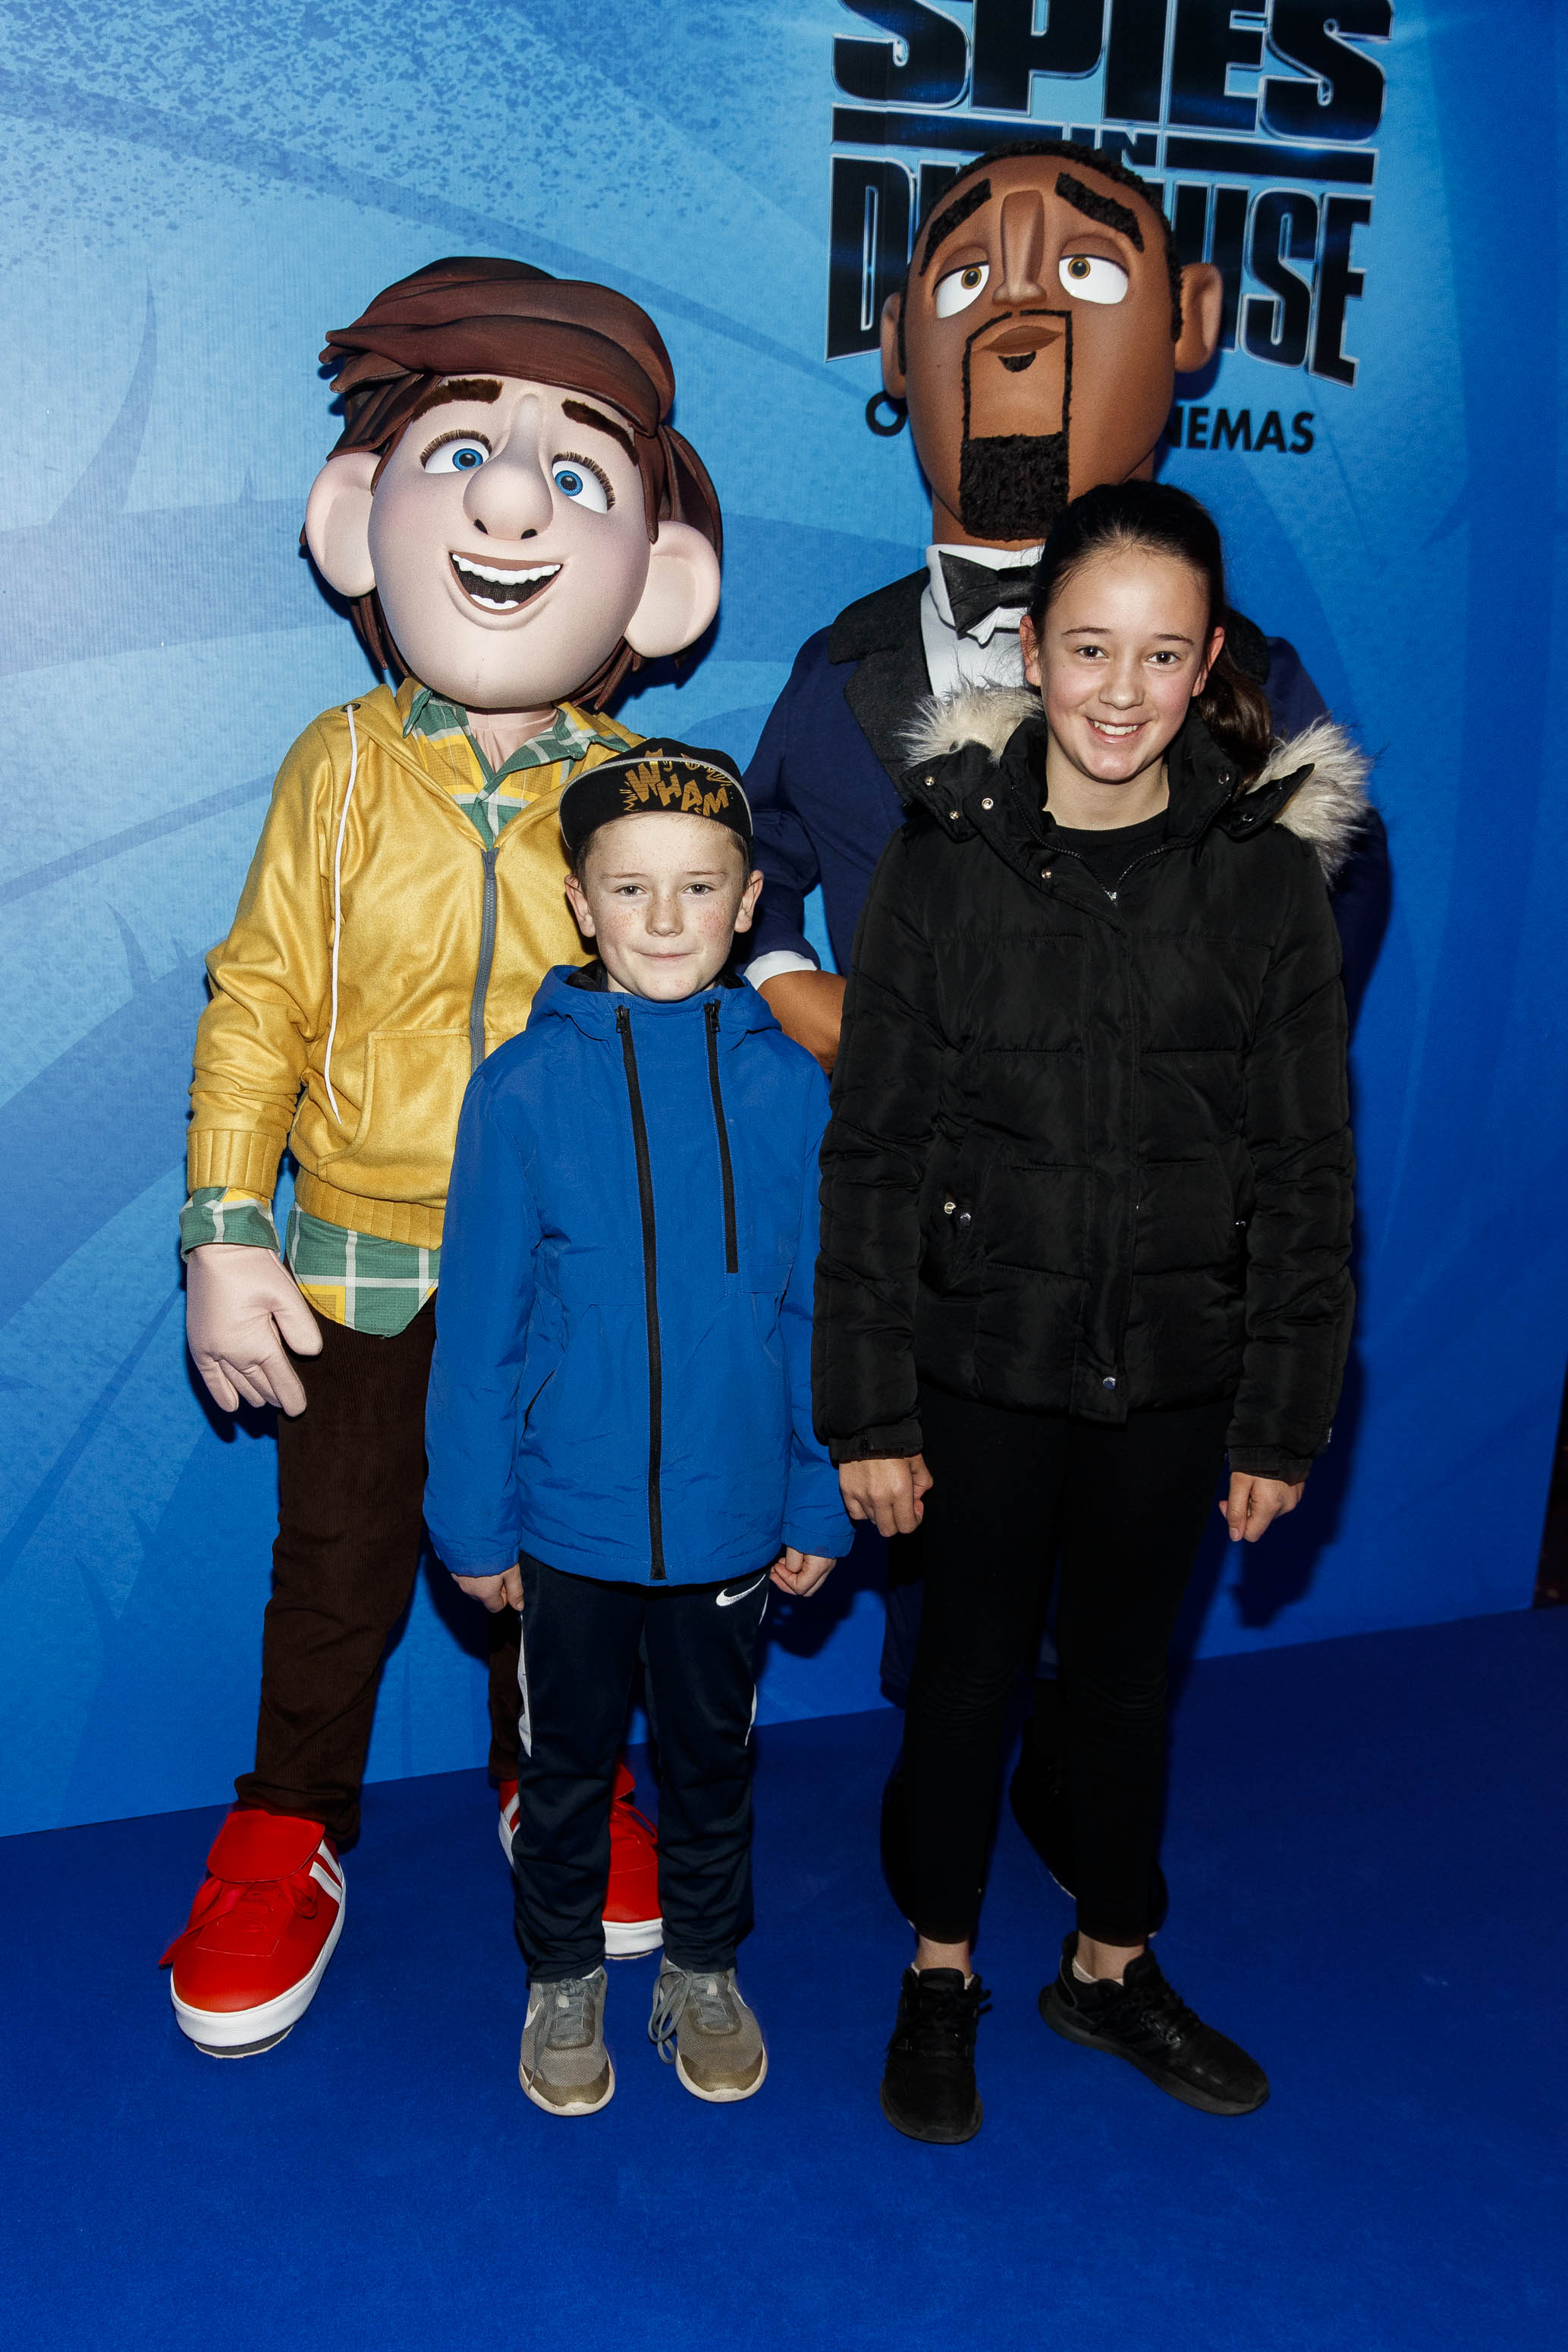 Reprto Free: Jake Burns (8) and Holly Burns (11) pictured at the special preview screening of SPIES IN DISGUISE in Cineworld.  Picture: Andres Poveda